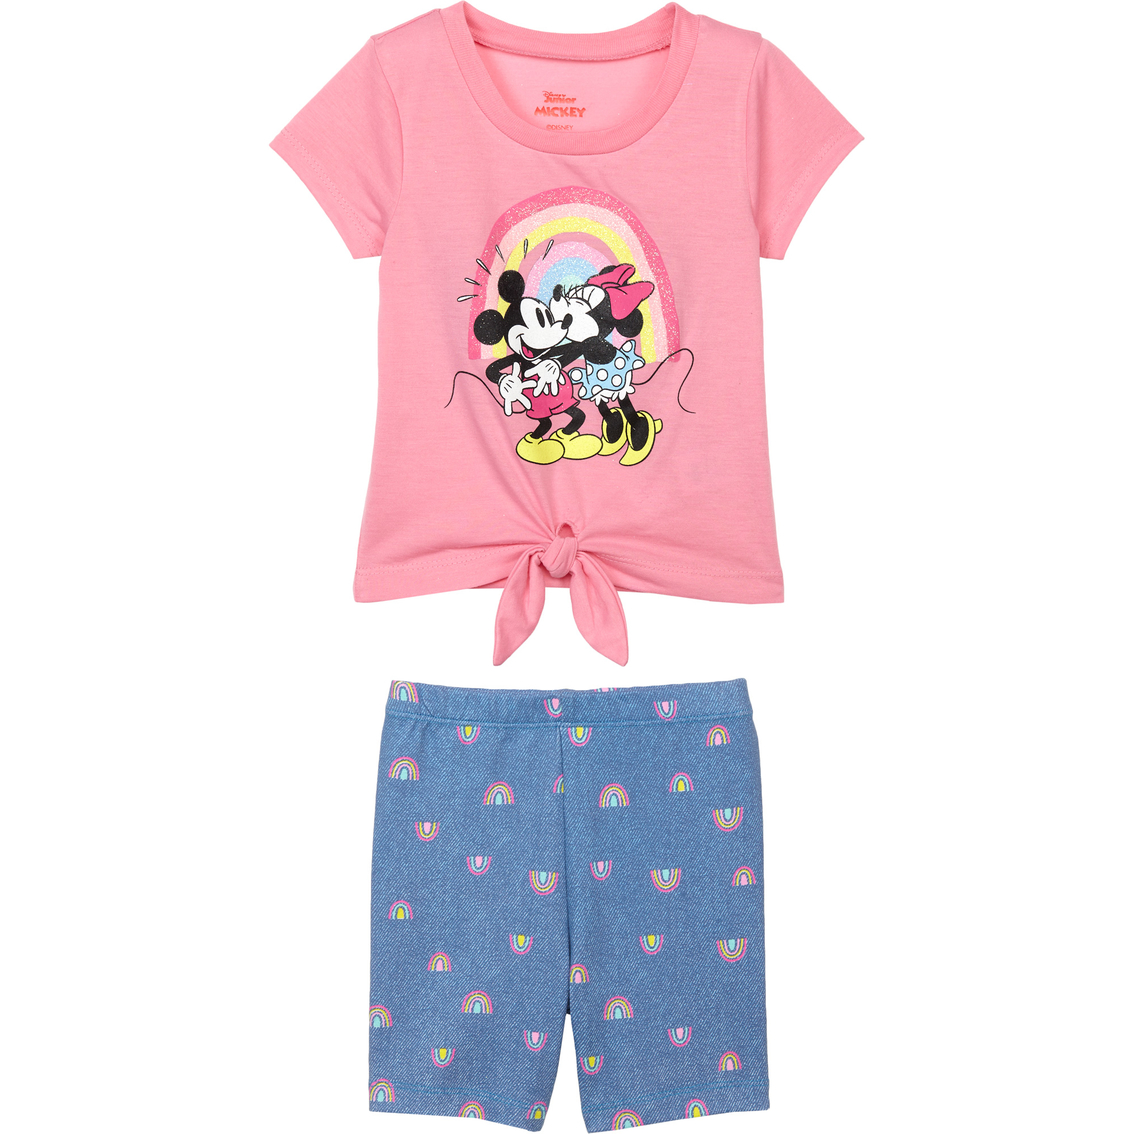 Disney Minnie Mouse Girls T-Shirt and Bike Shorts Set